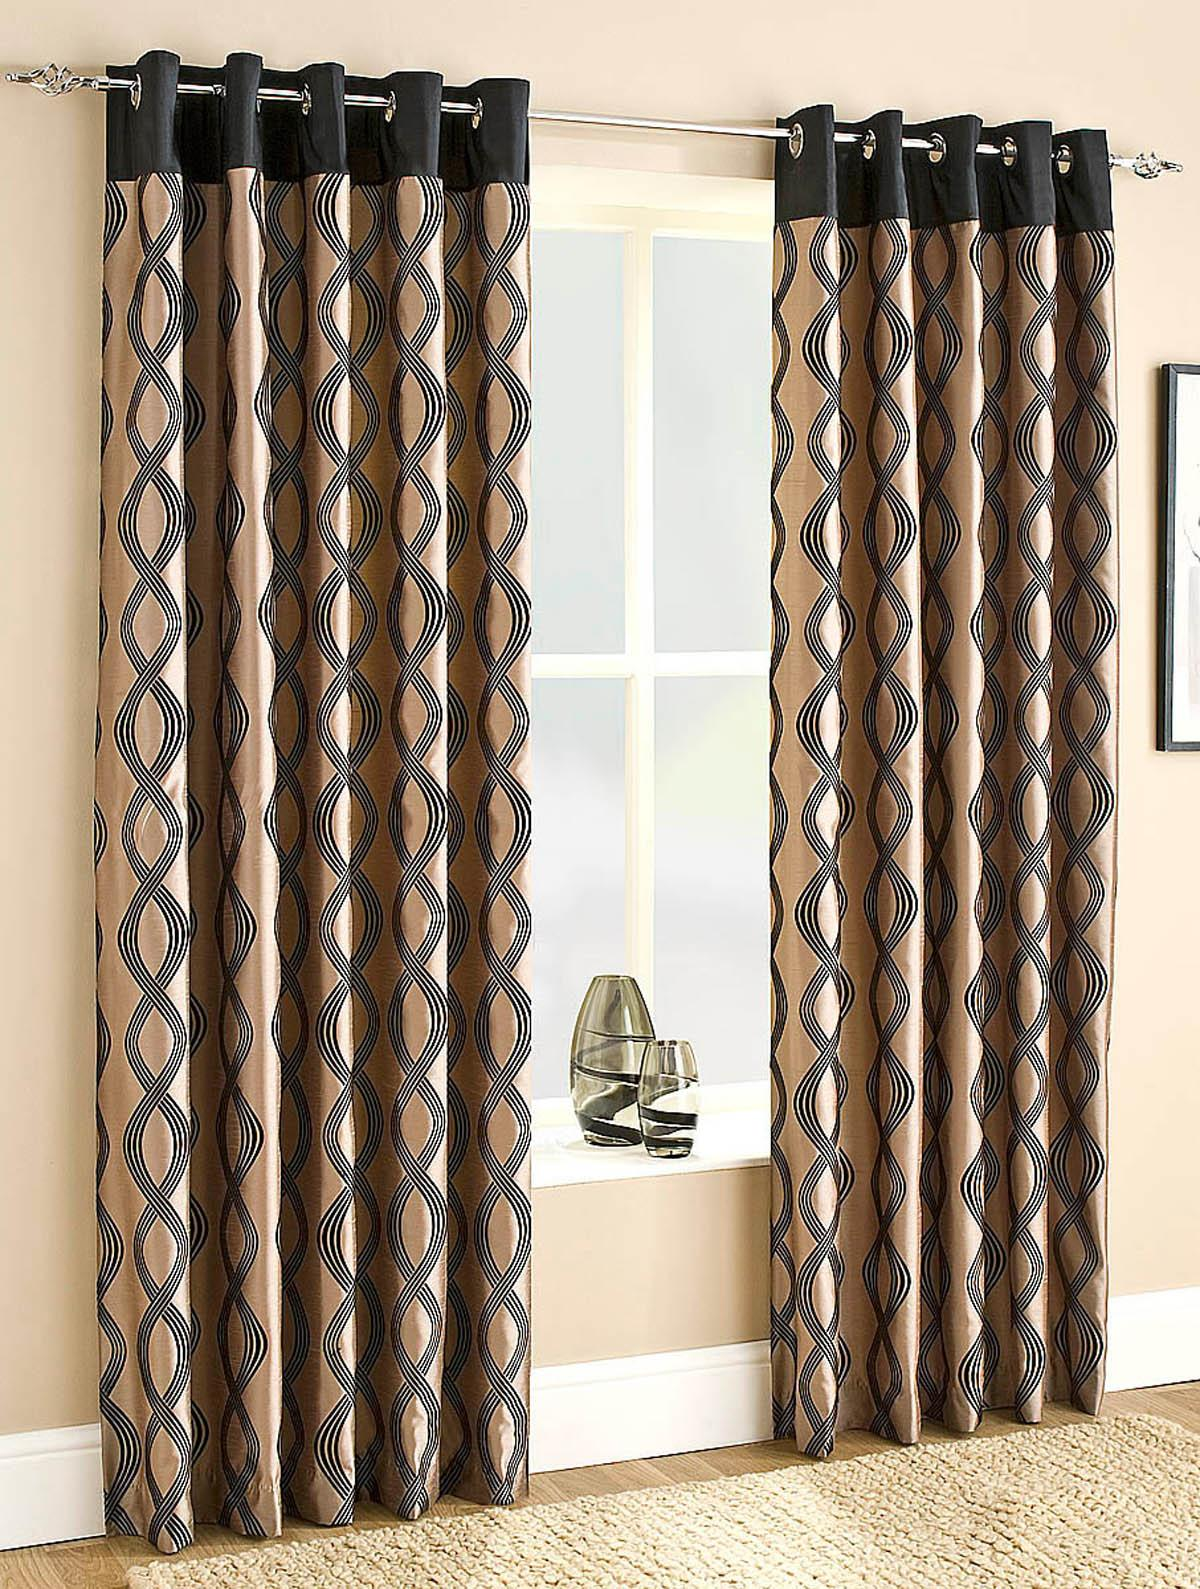 Ready Made Sheer Curtains Online Black Curtains Shop For Cheap Curtains And Blinds And Save